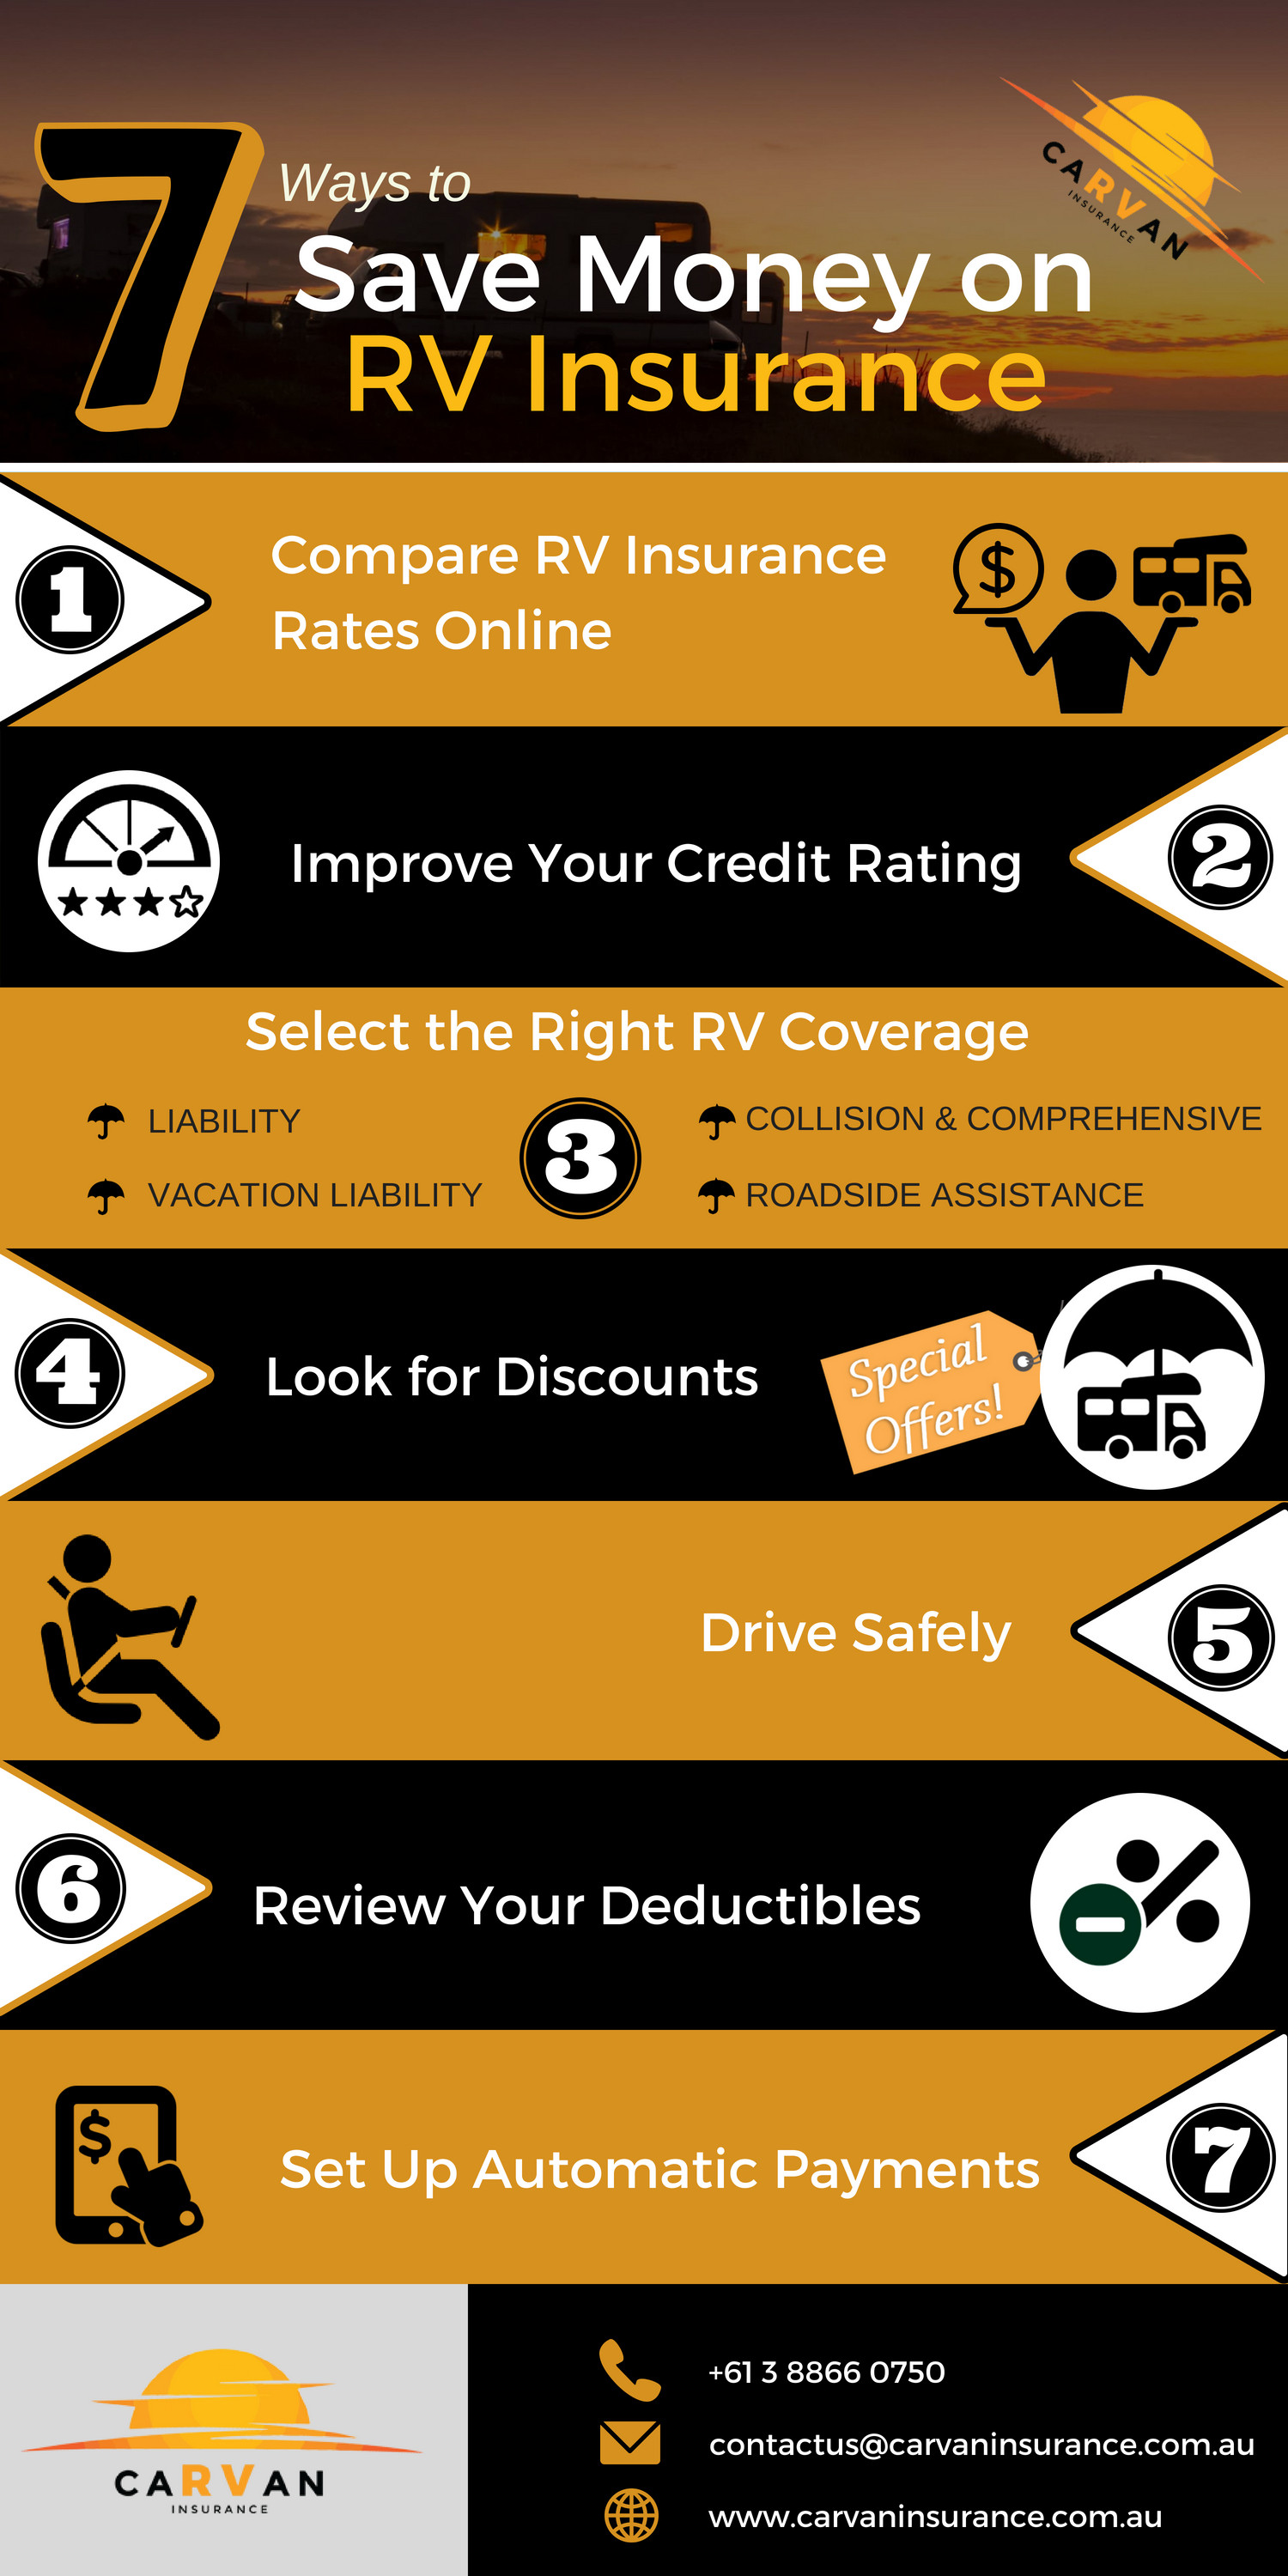 How to Save Money on RV Insurance - caRVan Insurance